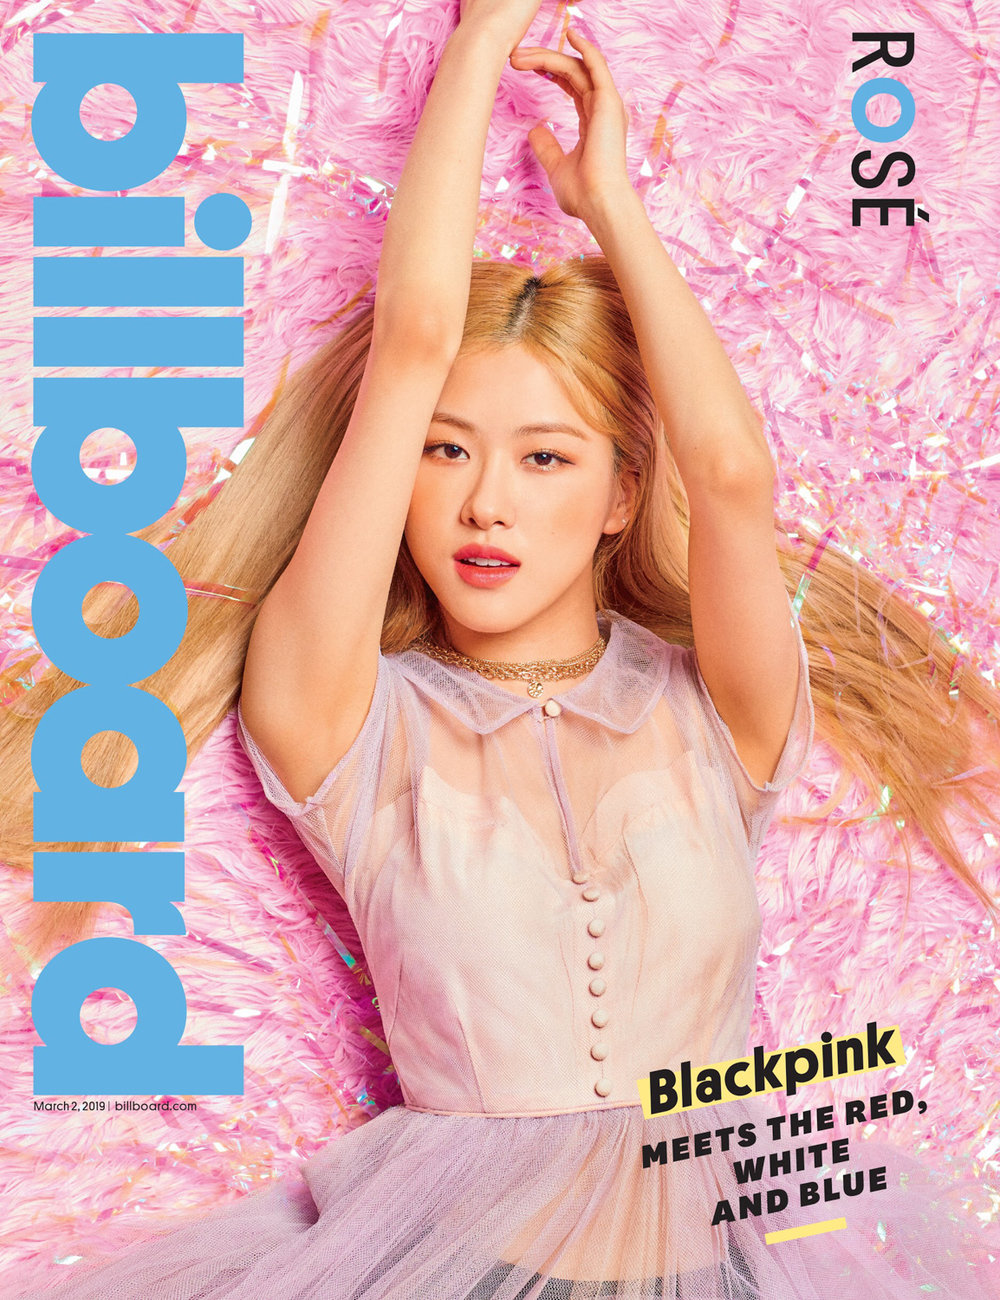 Blackpink x Billboard Magazine